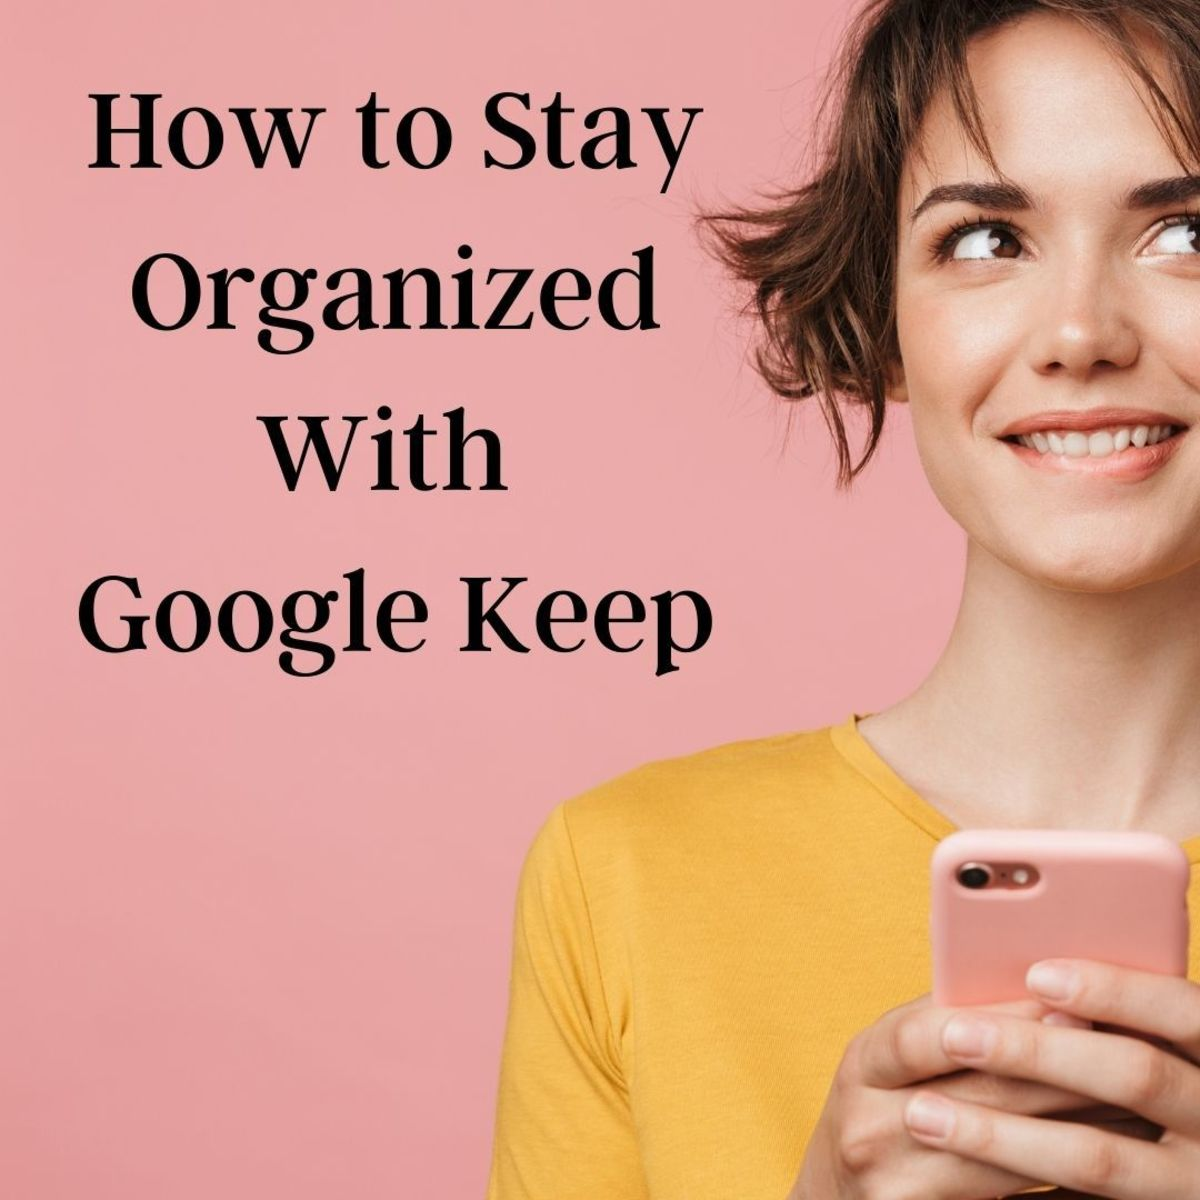 Google Keep is a great organizing app for busy parents.